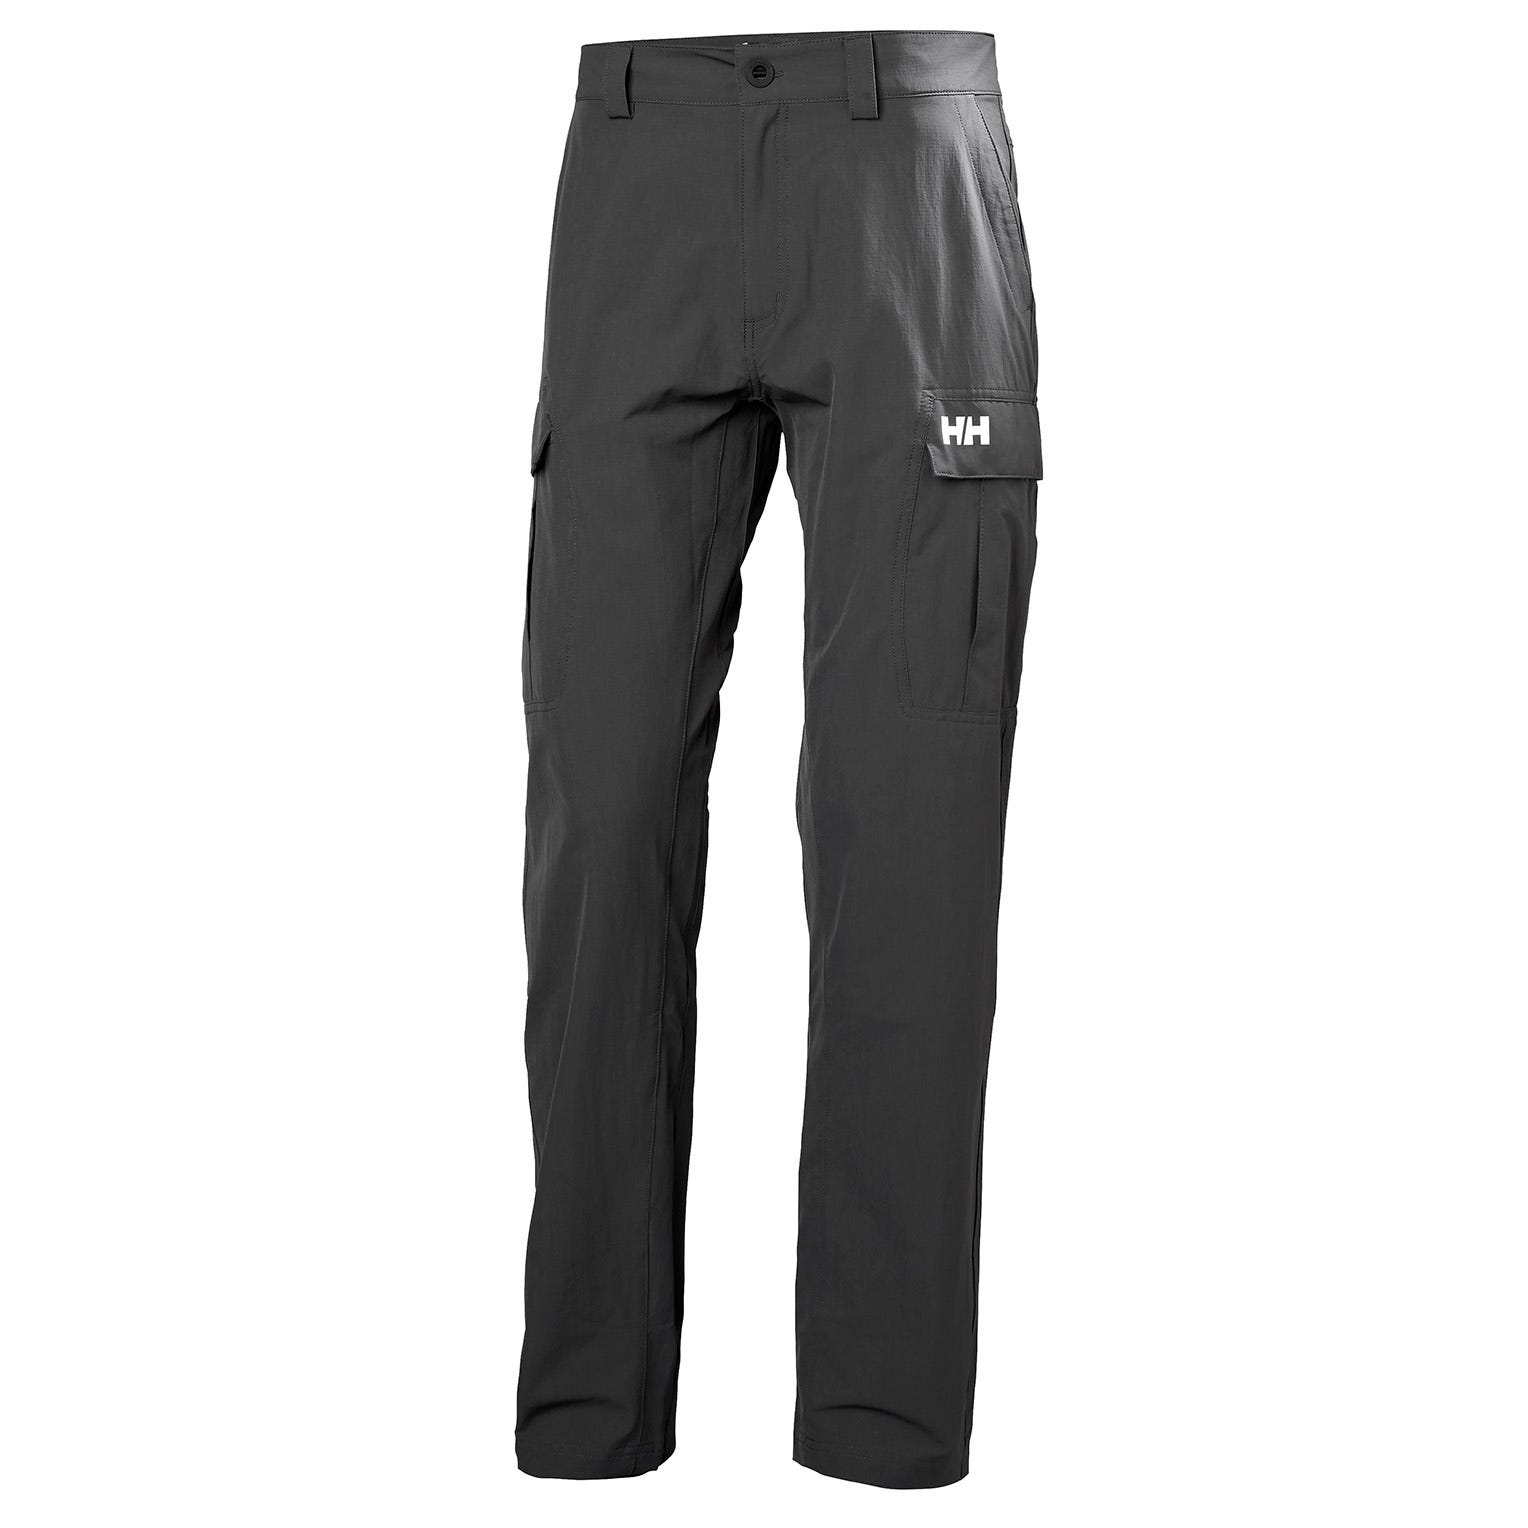 Helly Hansen Mens Qd Cargo Sailing Trouser Black 33